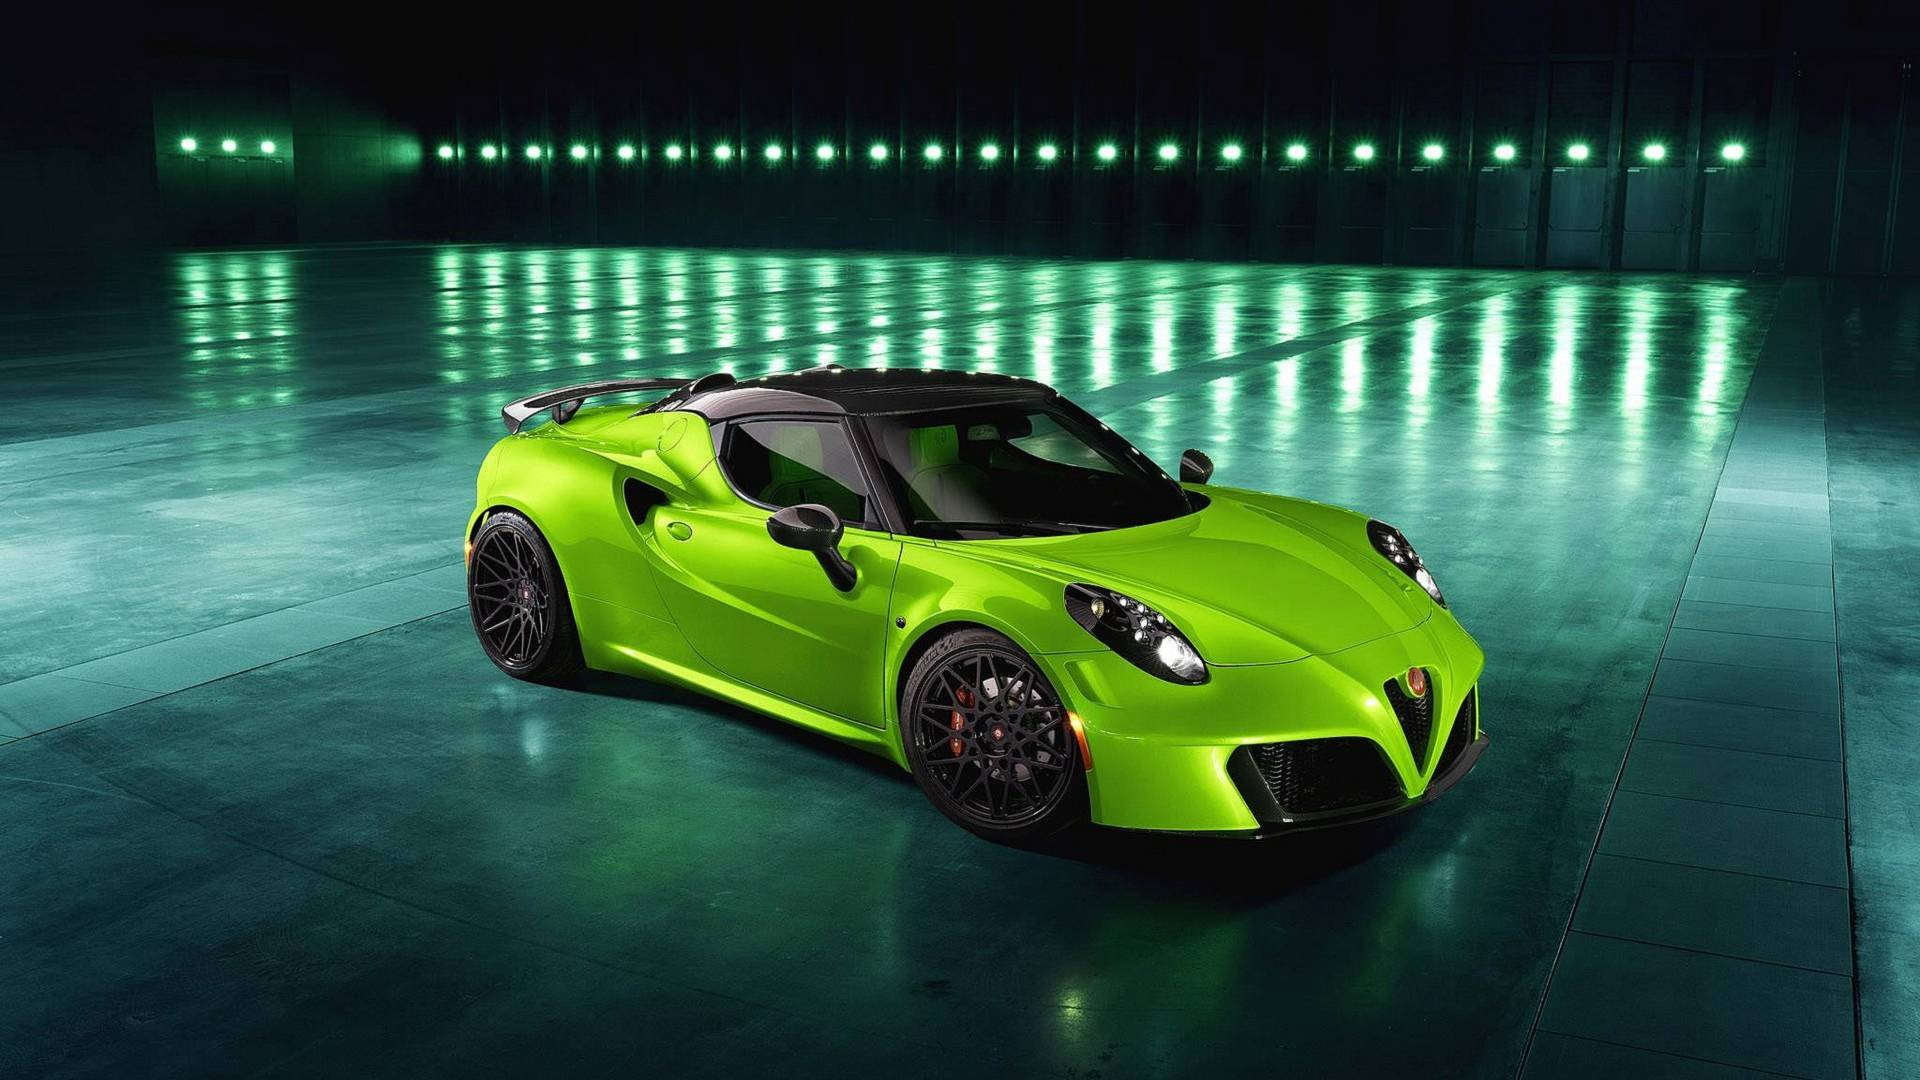 2018 Alfa Romeo 4c Centurion 007 The Green Arrow By Pogea Racing Rear End Top Speed